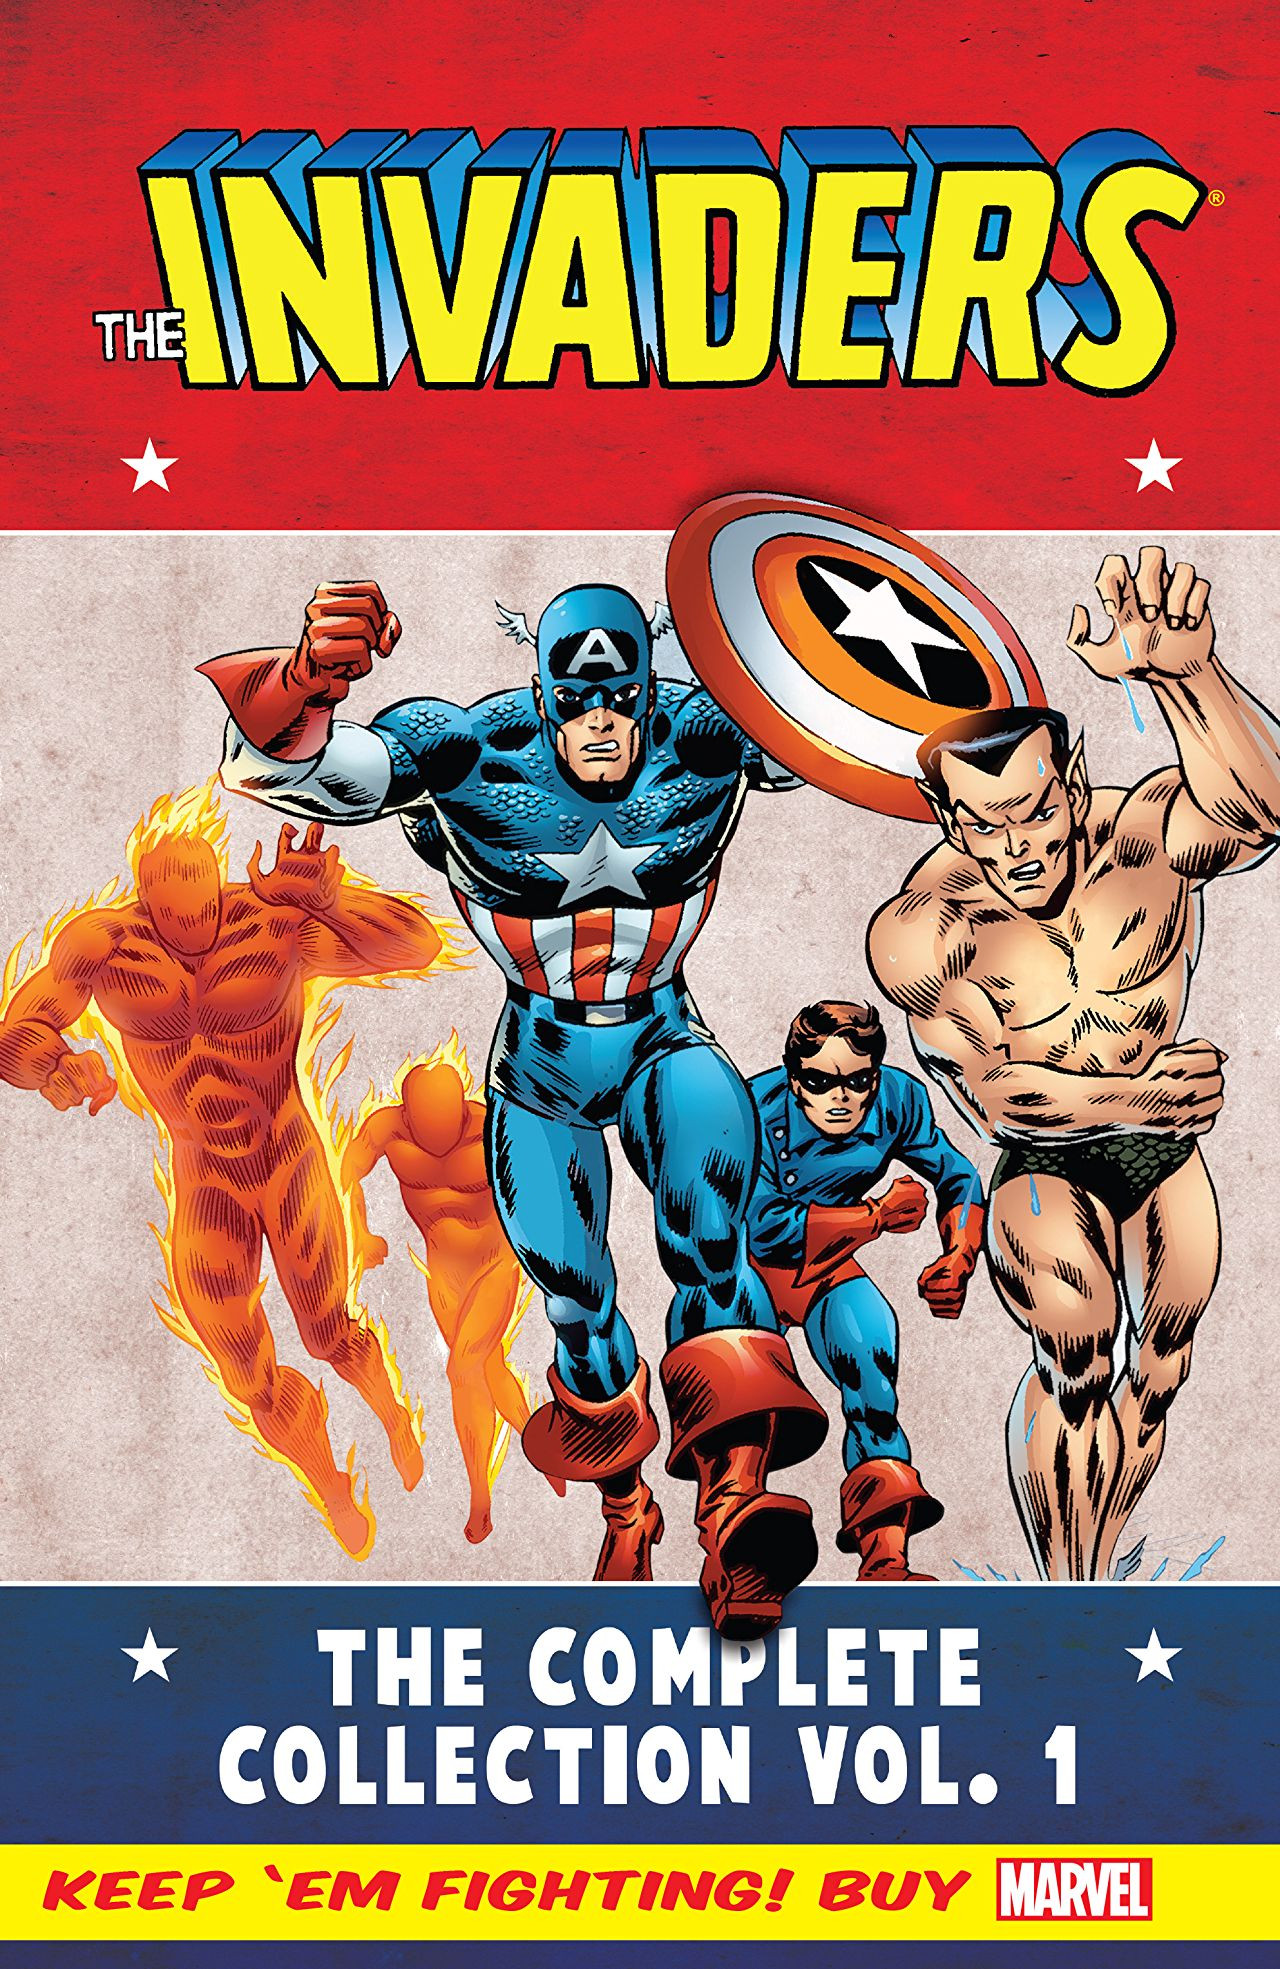 Invaders Classic: The Complete Collection Vol 1 1